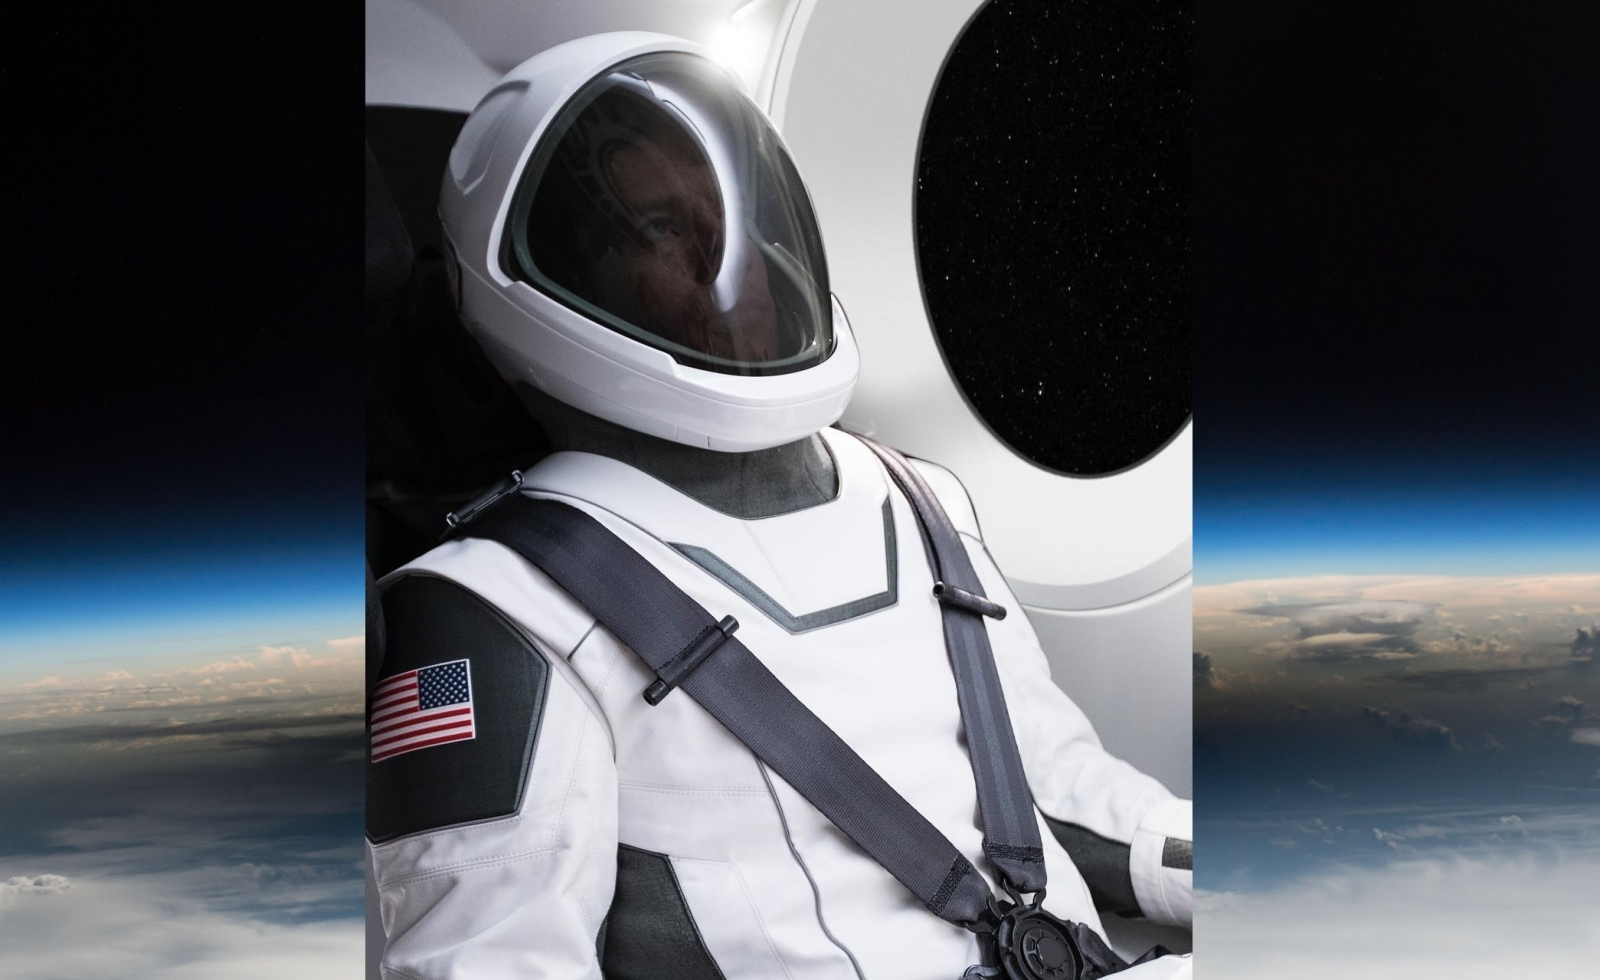 Elon Musk reveals first superhero-inspired SpaceX spacesuit